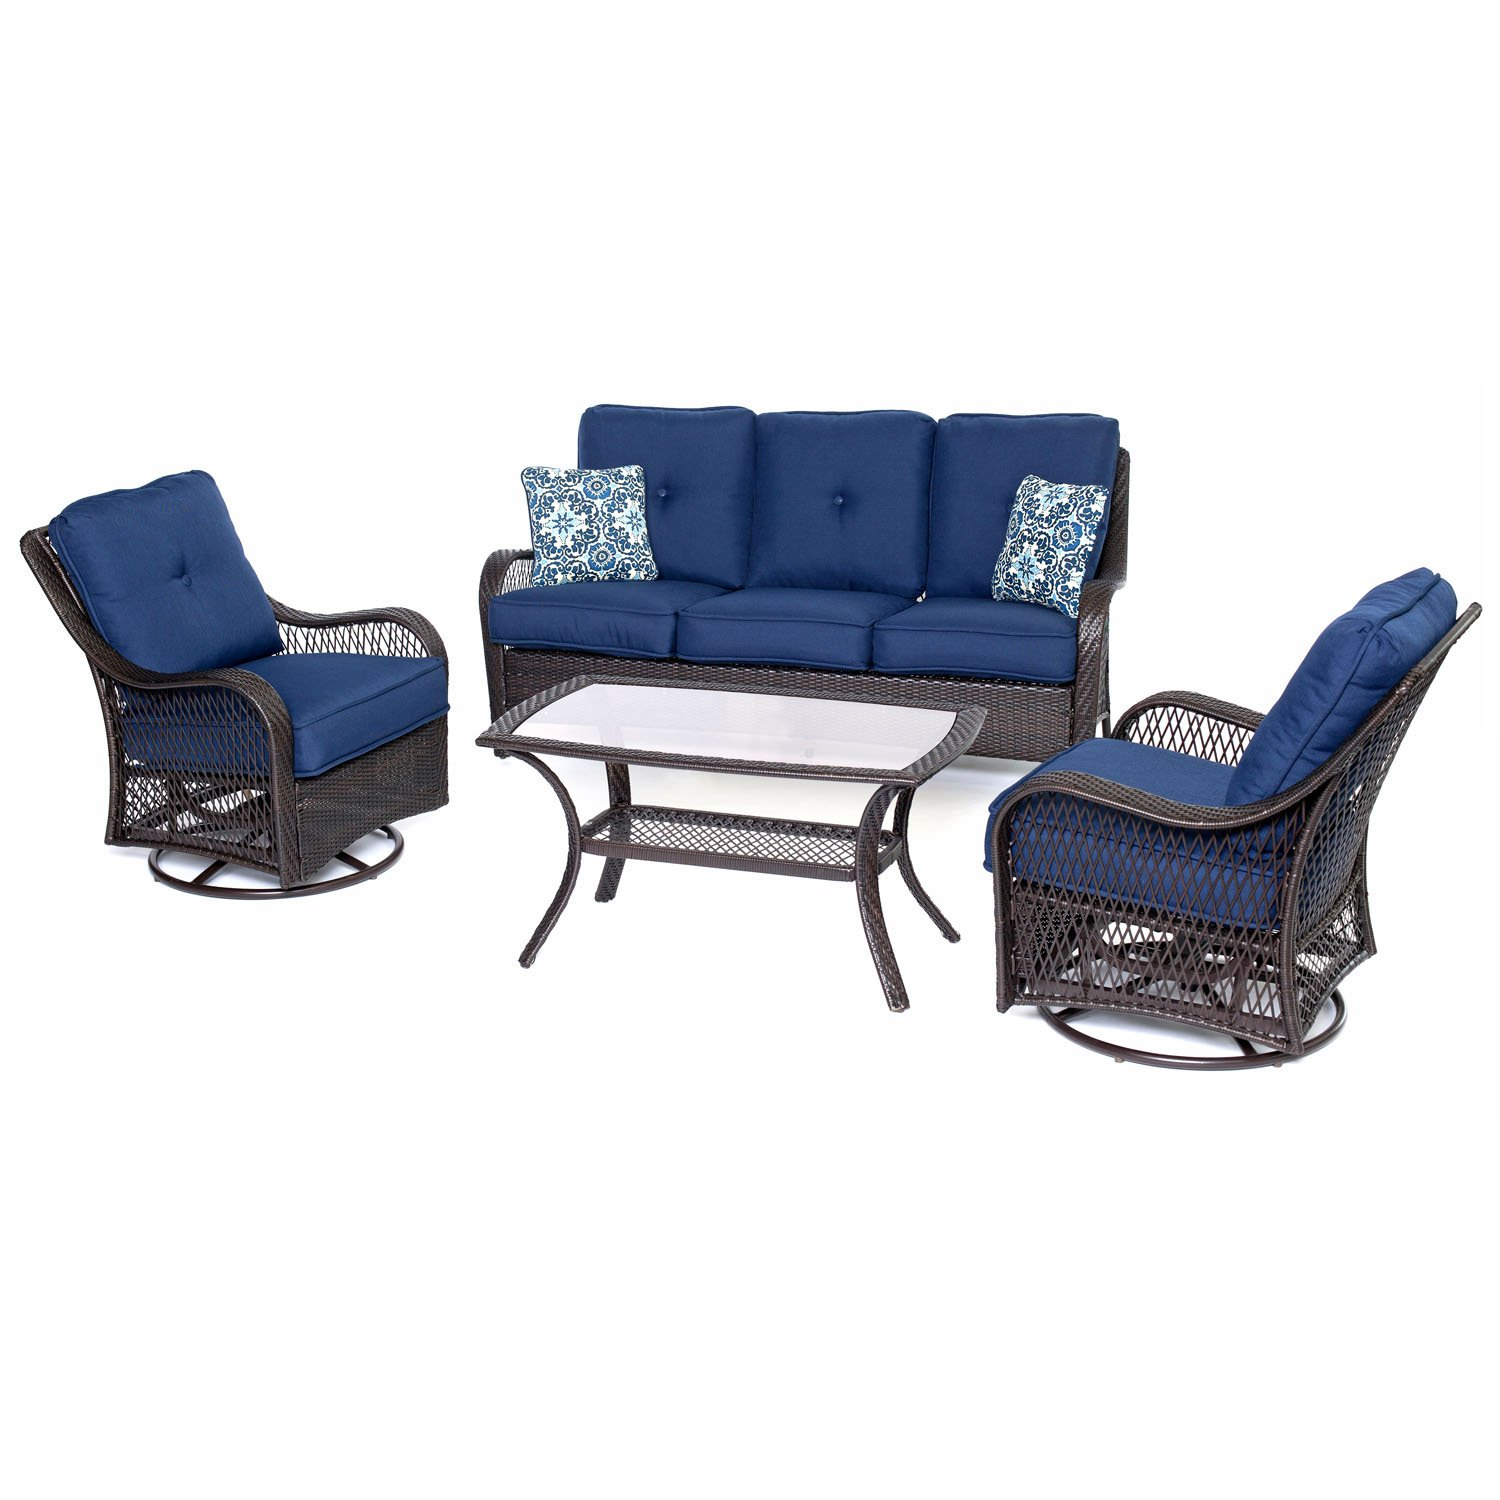 amazoncom brentwood wicker 4 piece outdoor seating set 2 swivel gliders 1 loveseat cushions and 1 coffee table with navy blue cushions patio - Swivel Patio Chairs